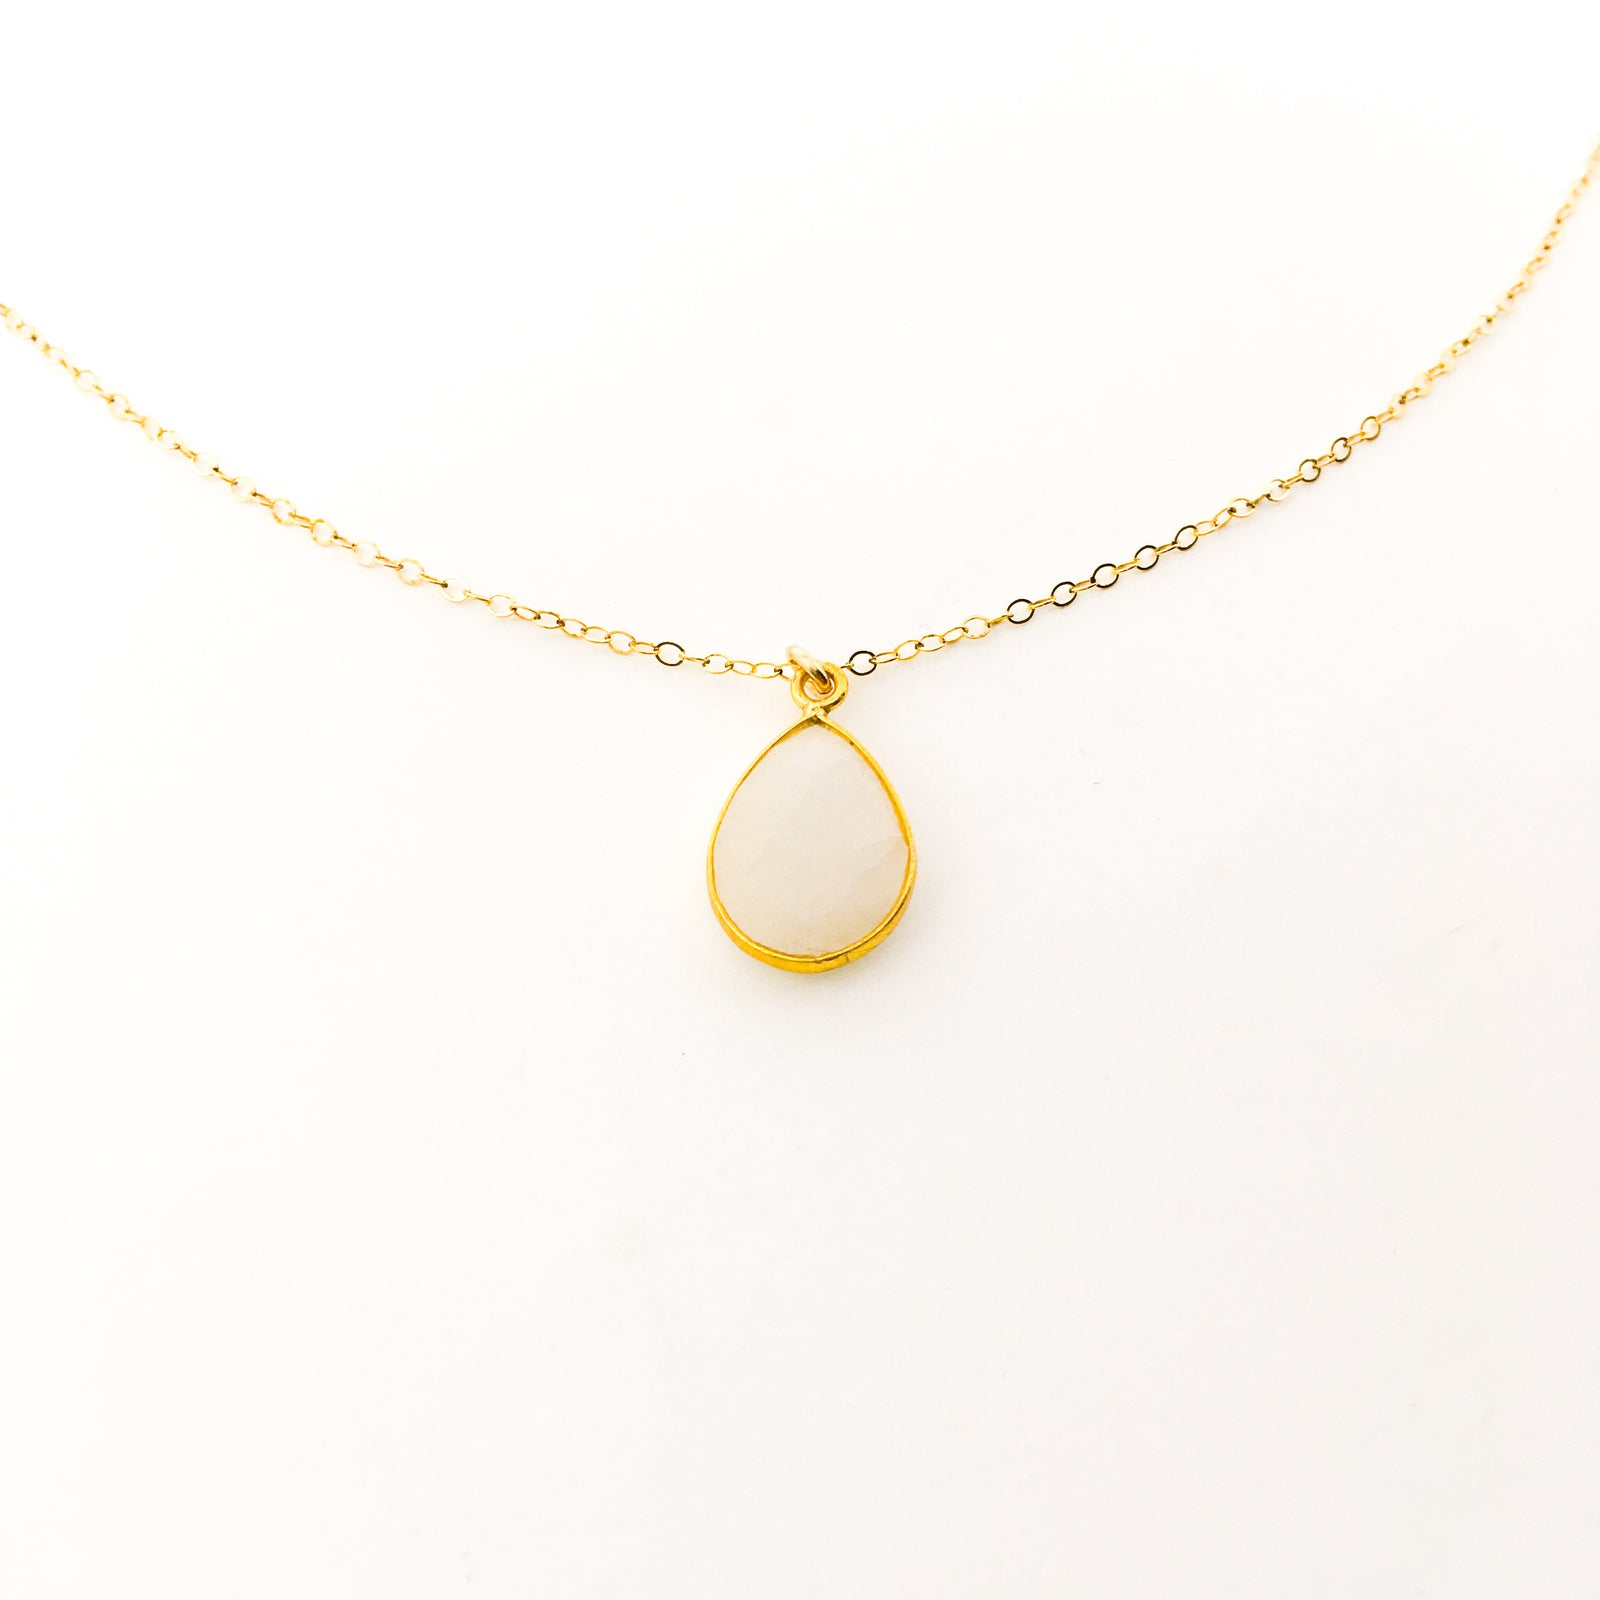 MEDIUM TEAR DROP MOONSTONE NECKLACE | 14K GOLD-FILLED